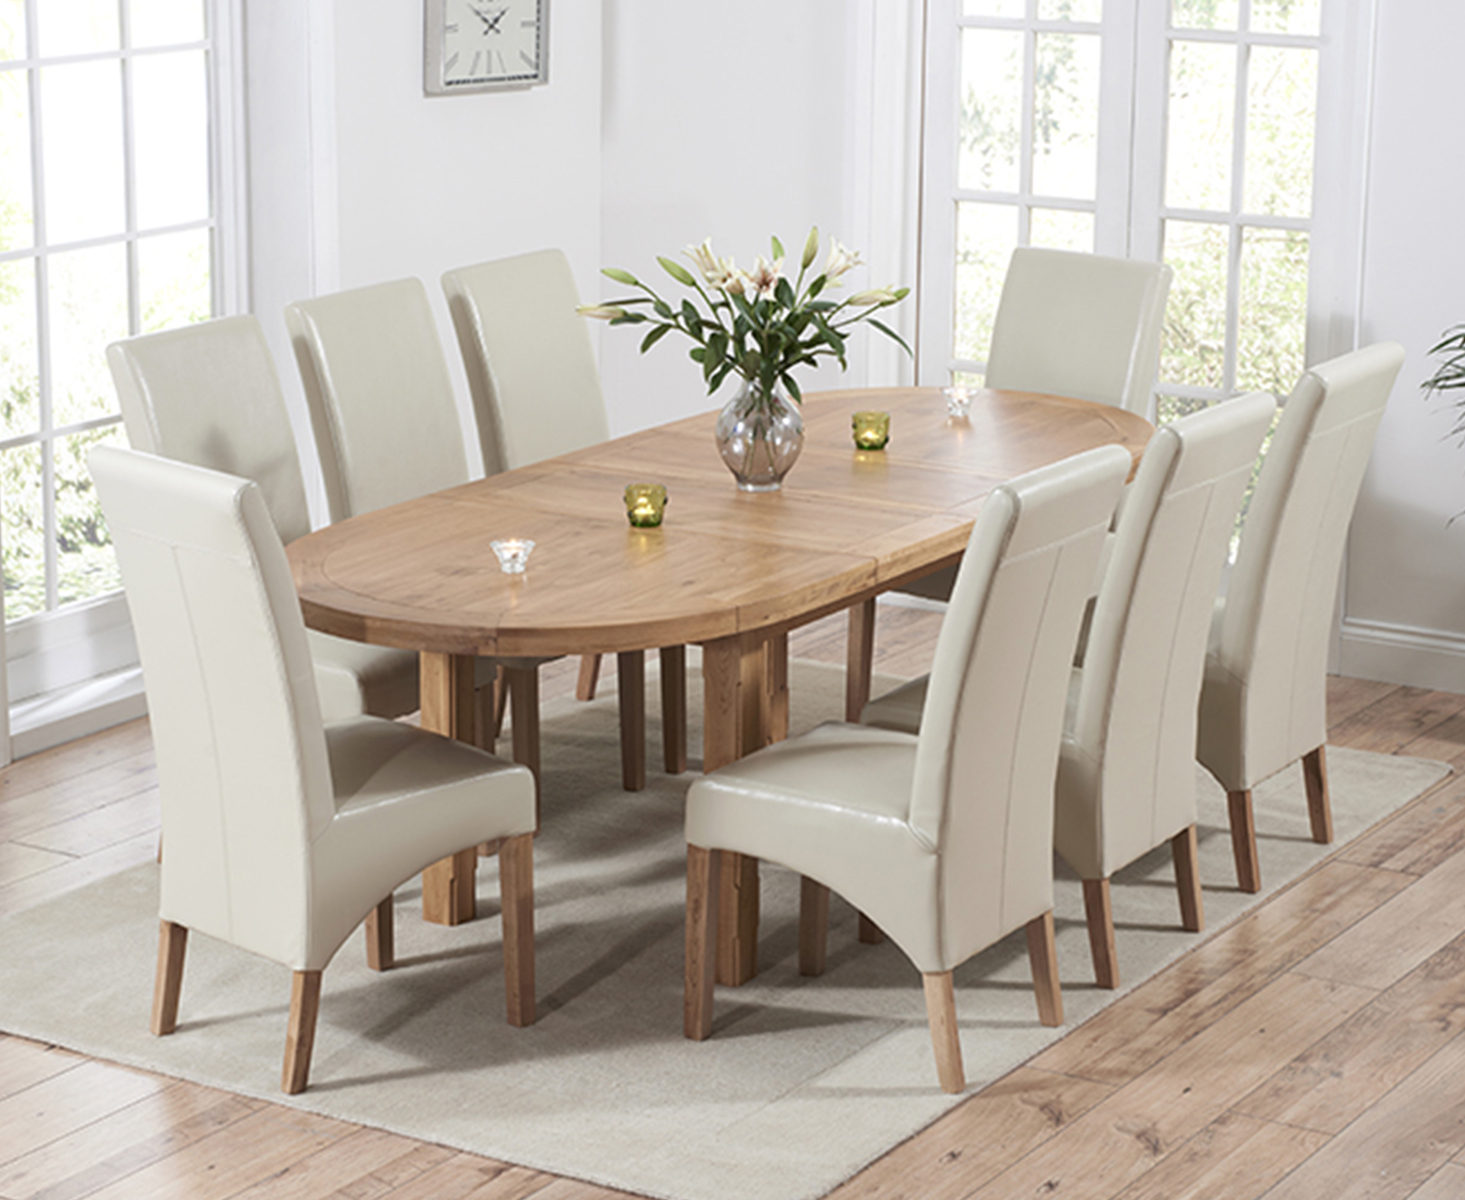 An image of Chelsea Oak Extending Dining Table with Cannes Chairs